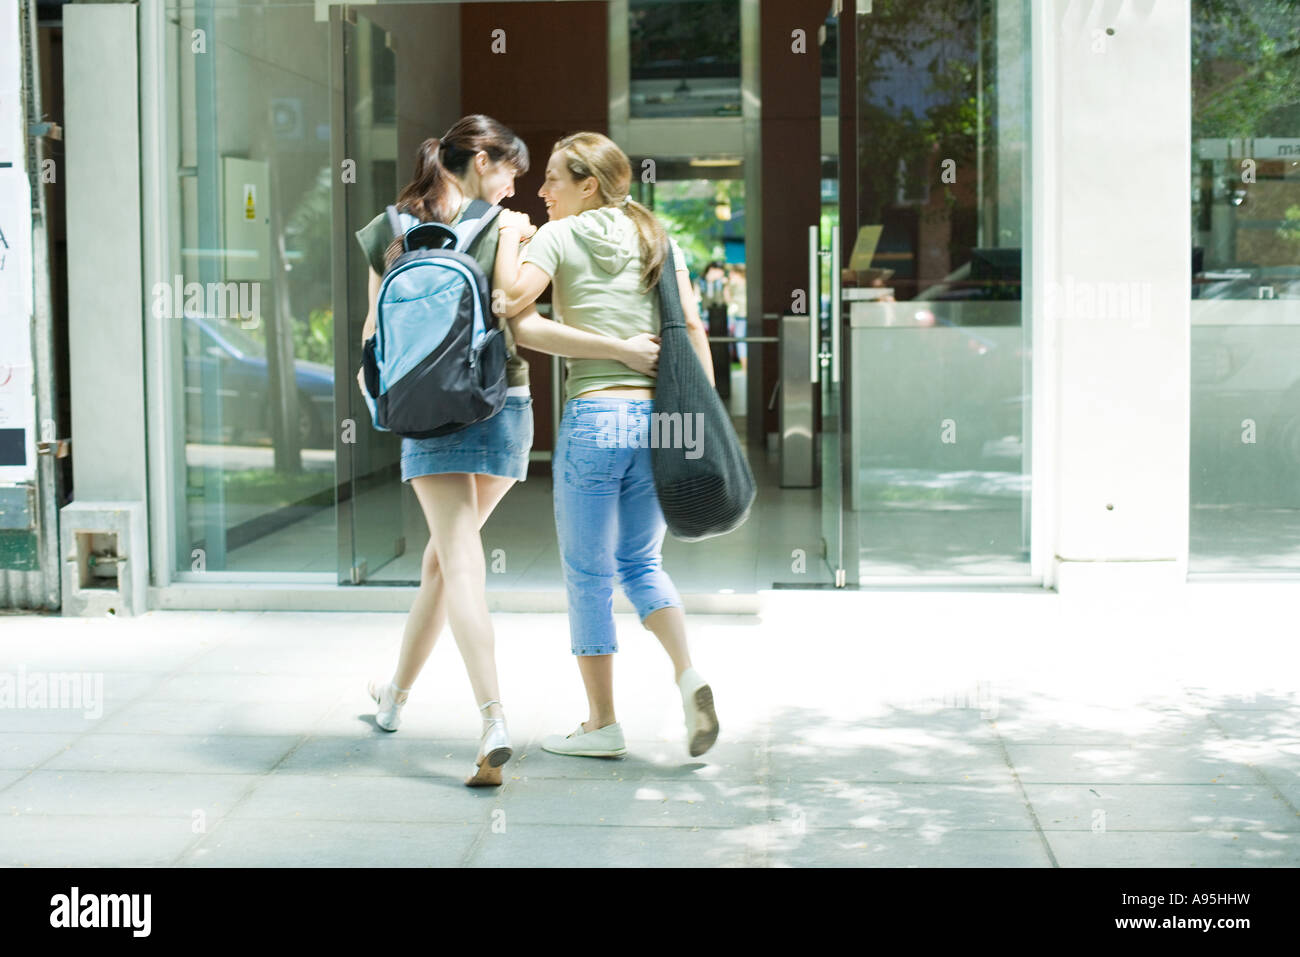 Two young women walking toward doorway together, arms around each other - Stock Image